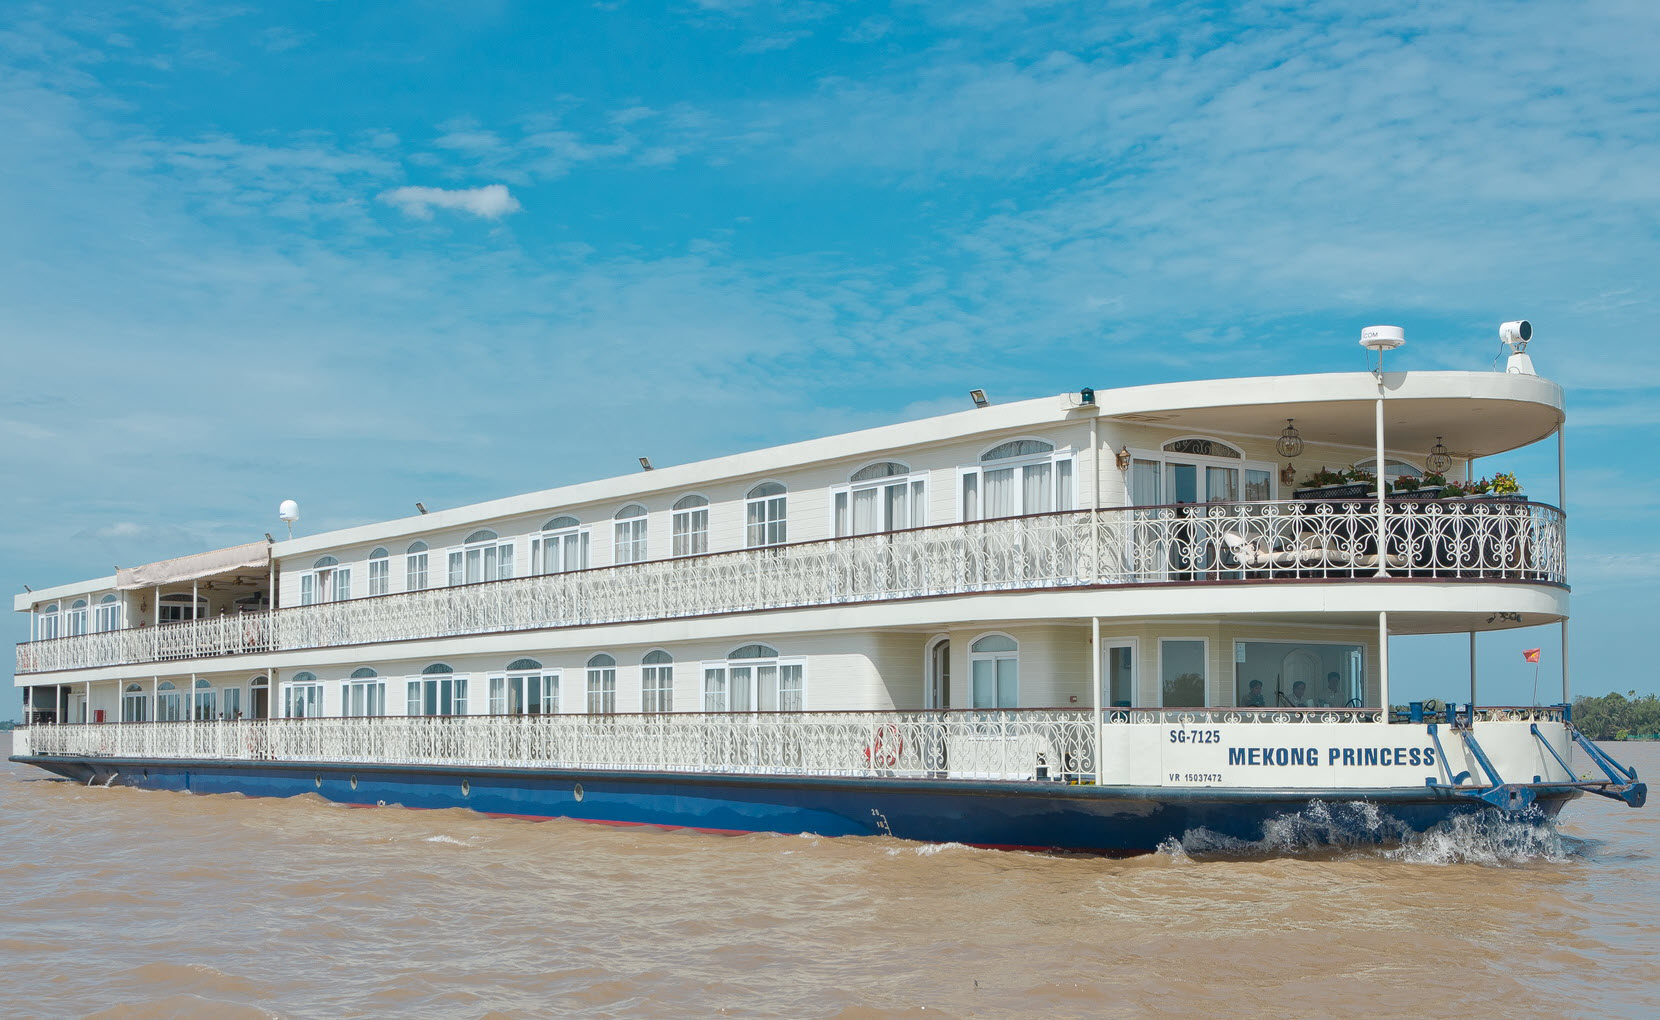 The Ultimate Mekong Discovery Upstream With Mekong Princess Cruise